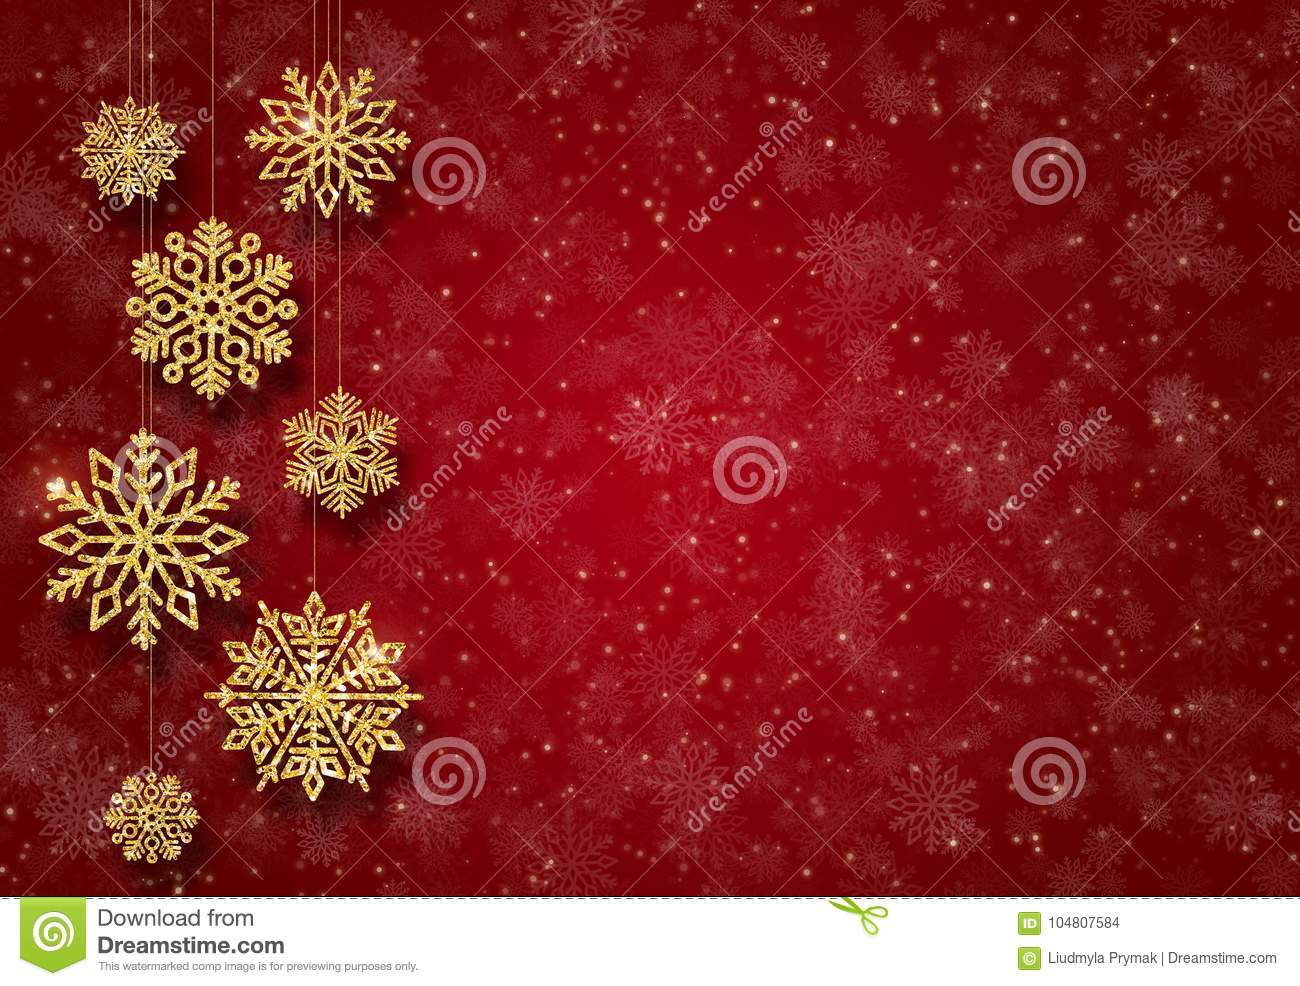 Red New Year background with gold Christmas-tree toys. Golden snowflakes.